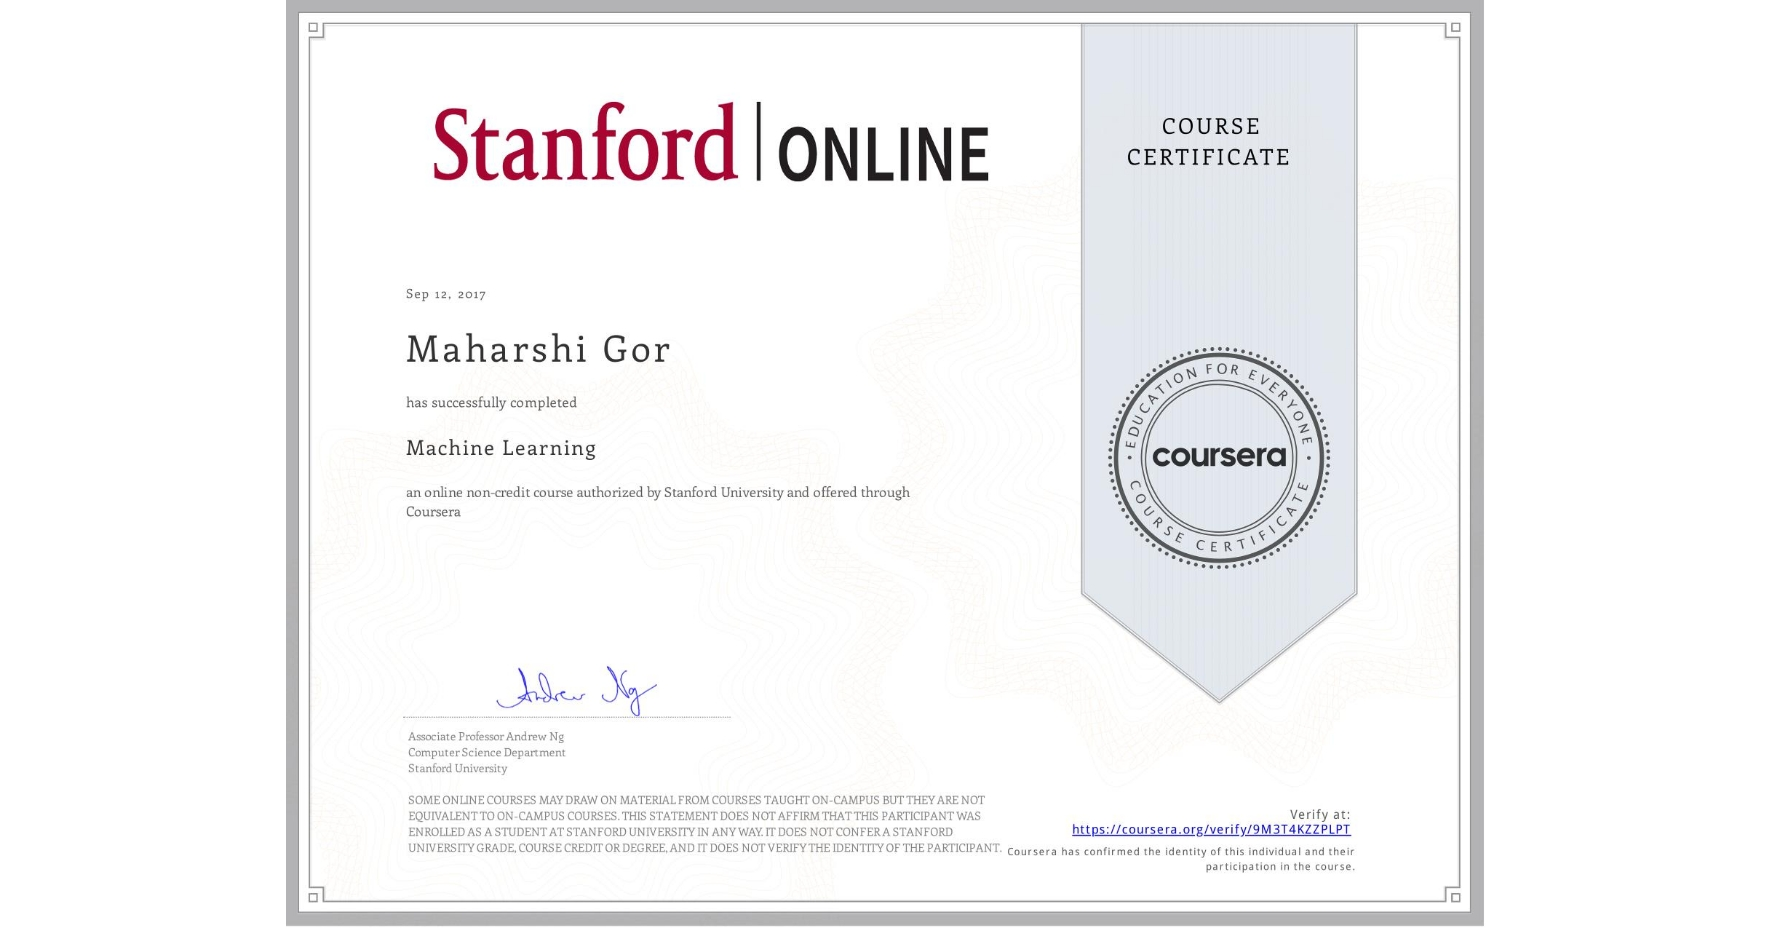 View certificate for Maharshi Gor, Machine Learning, an online non-credit course authorized by Stanford University and offered through Coursera